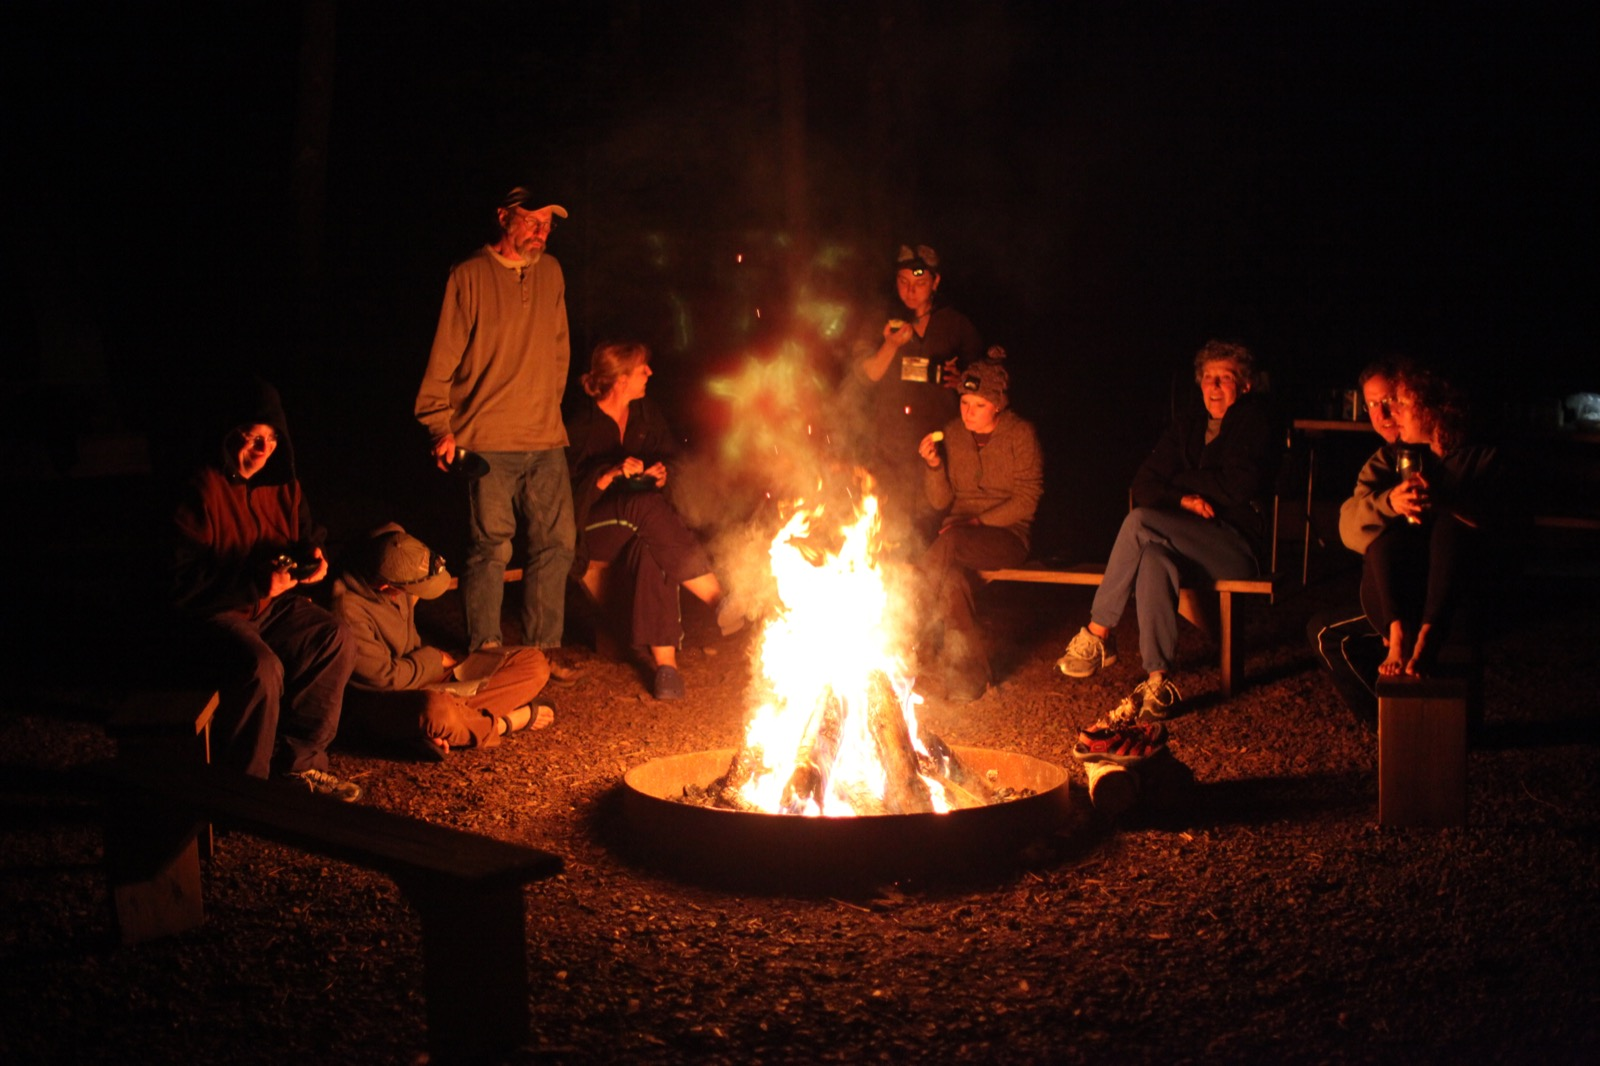 Participants gather around a campfire.